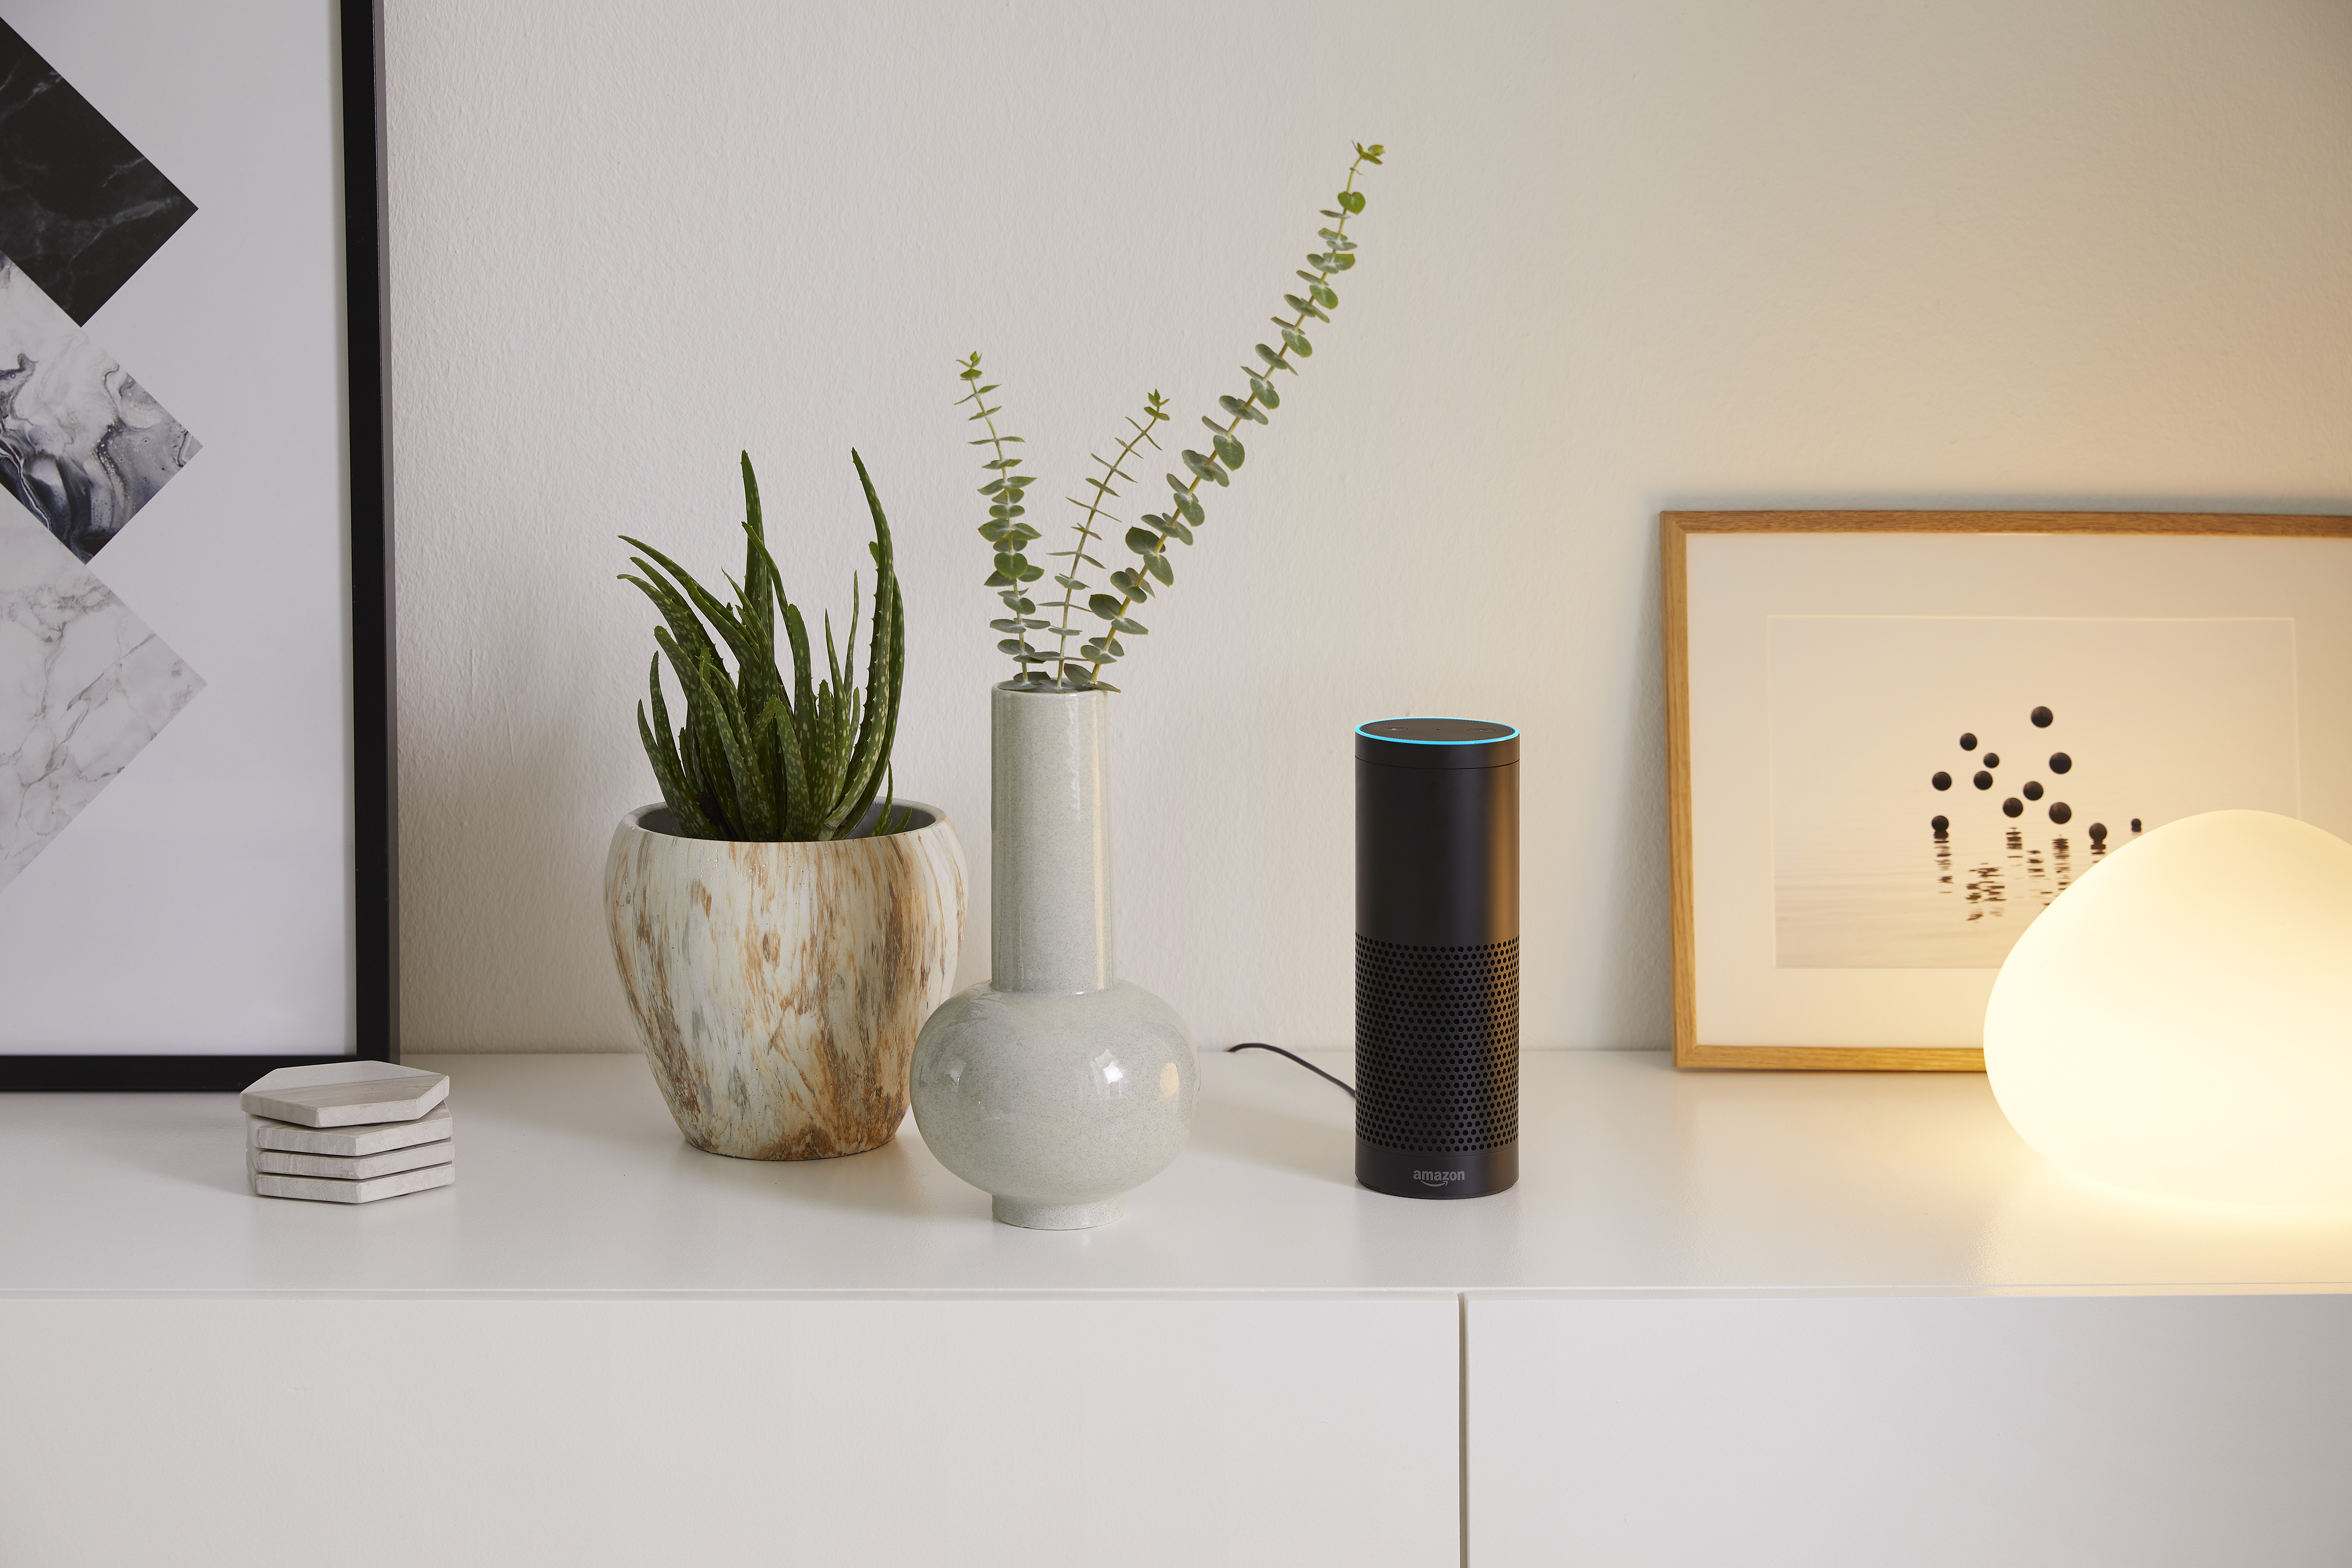 Amazon Smart Home Philips Lighting And Amazon Team Up To Make The Smart Home Even